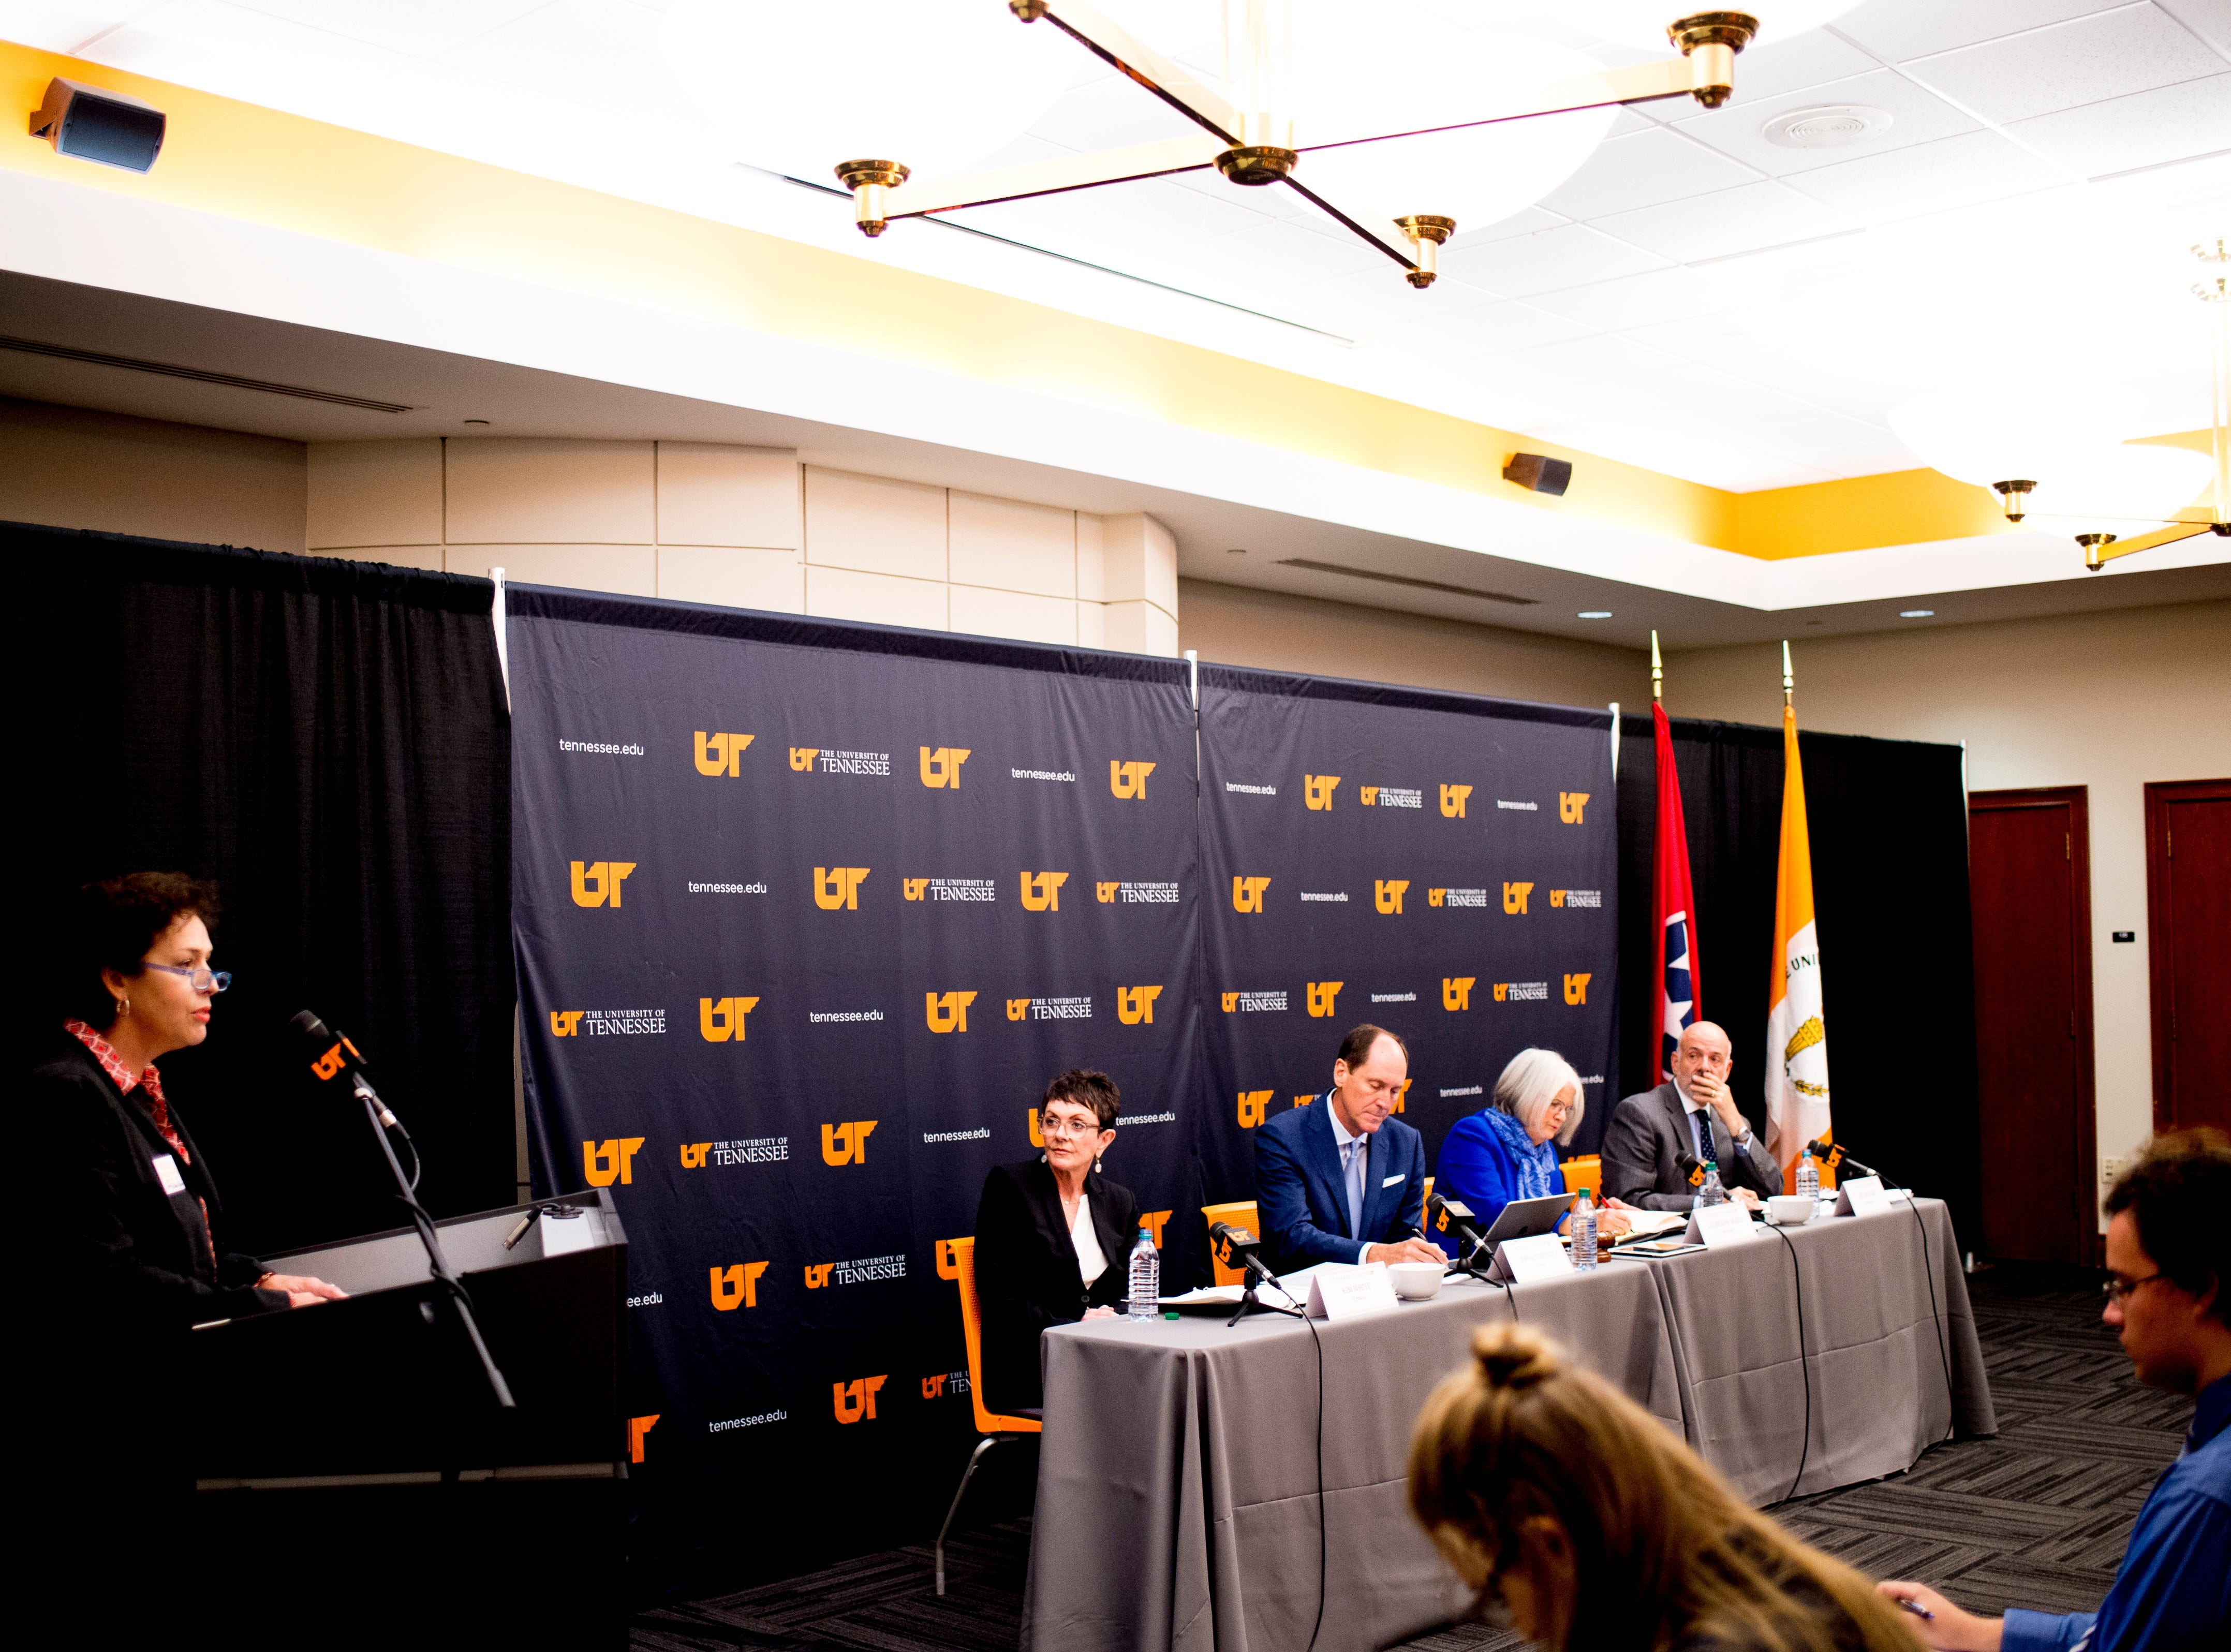 The University of Tennessee Board of Trustees meets at the UTK Visitor's Center in Knoxville, Tennessee on Tuesday, September 25, 2018. The board met to discuss several topics including the installment of an interim president.